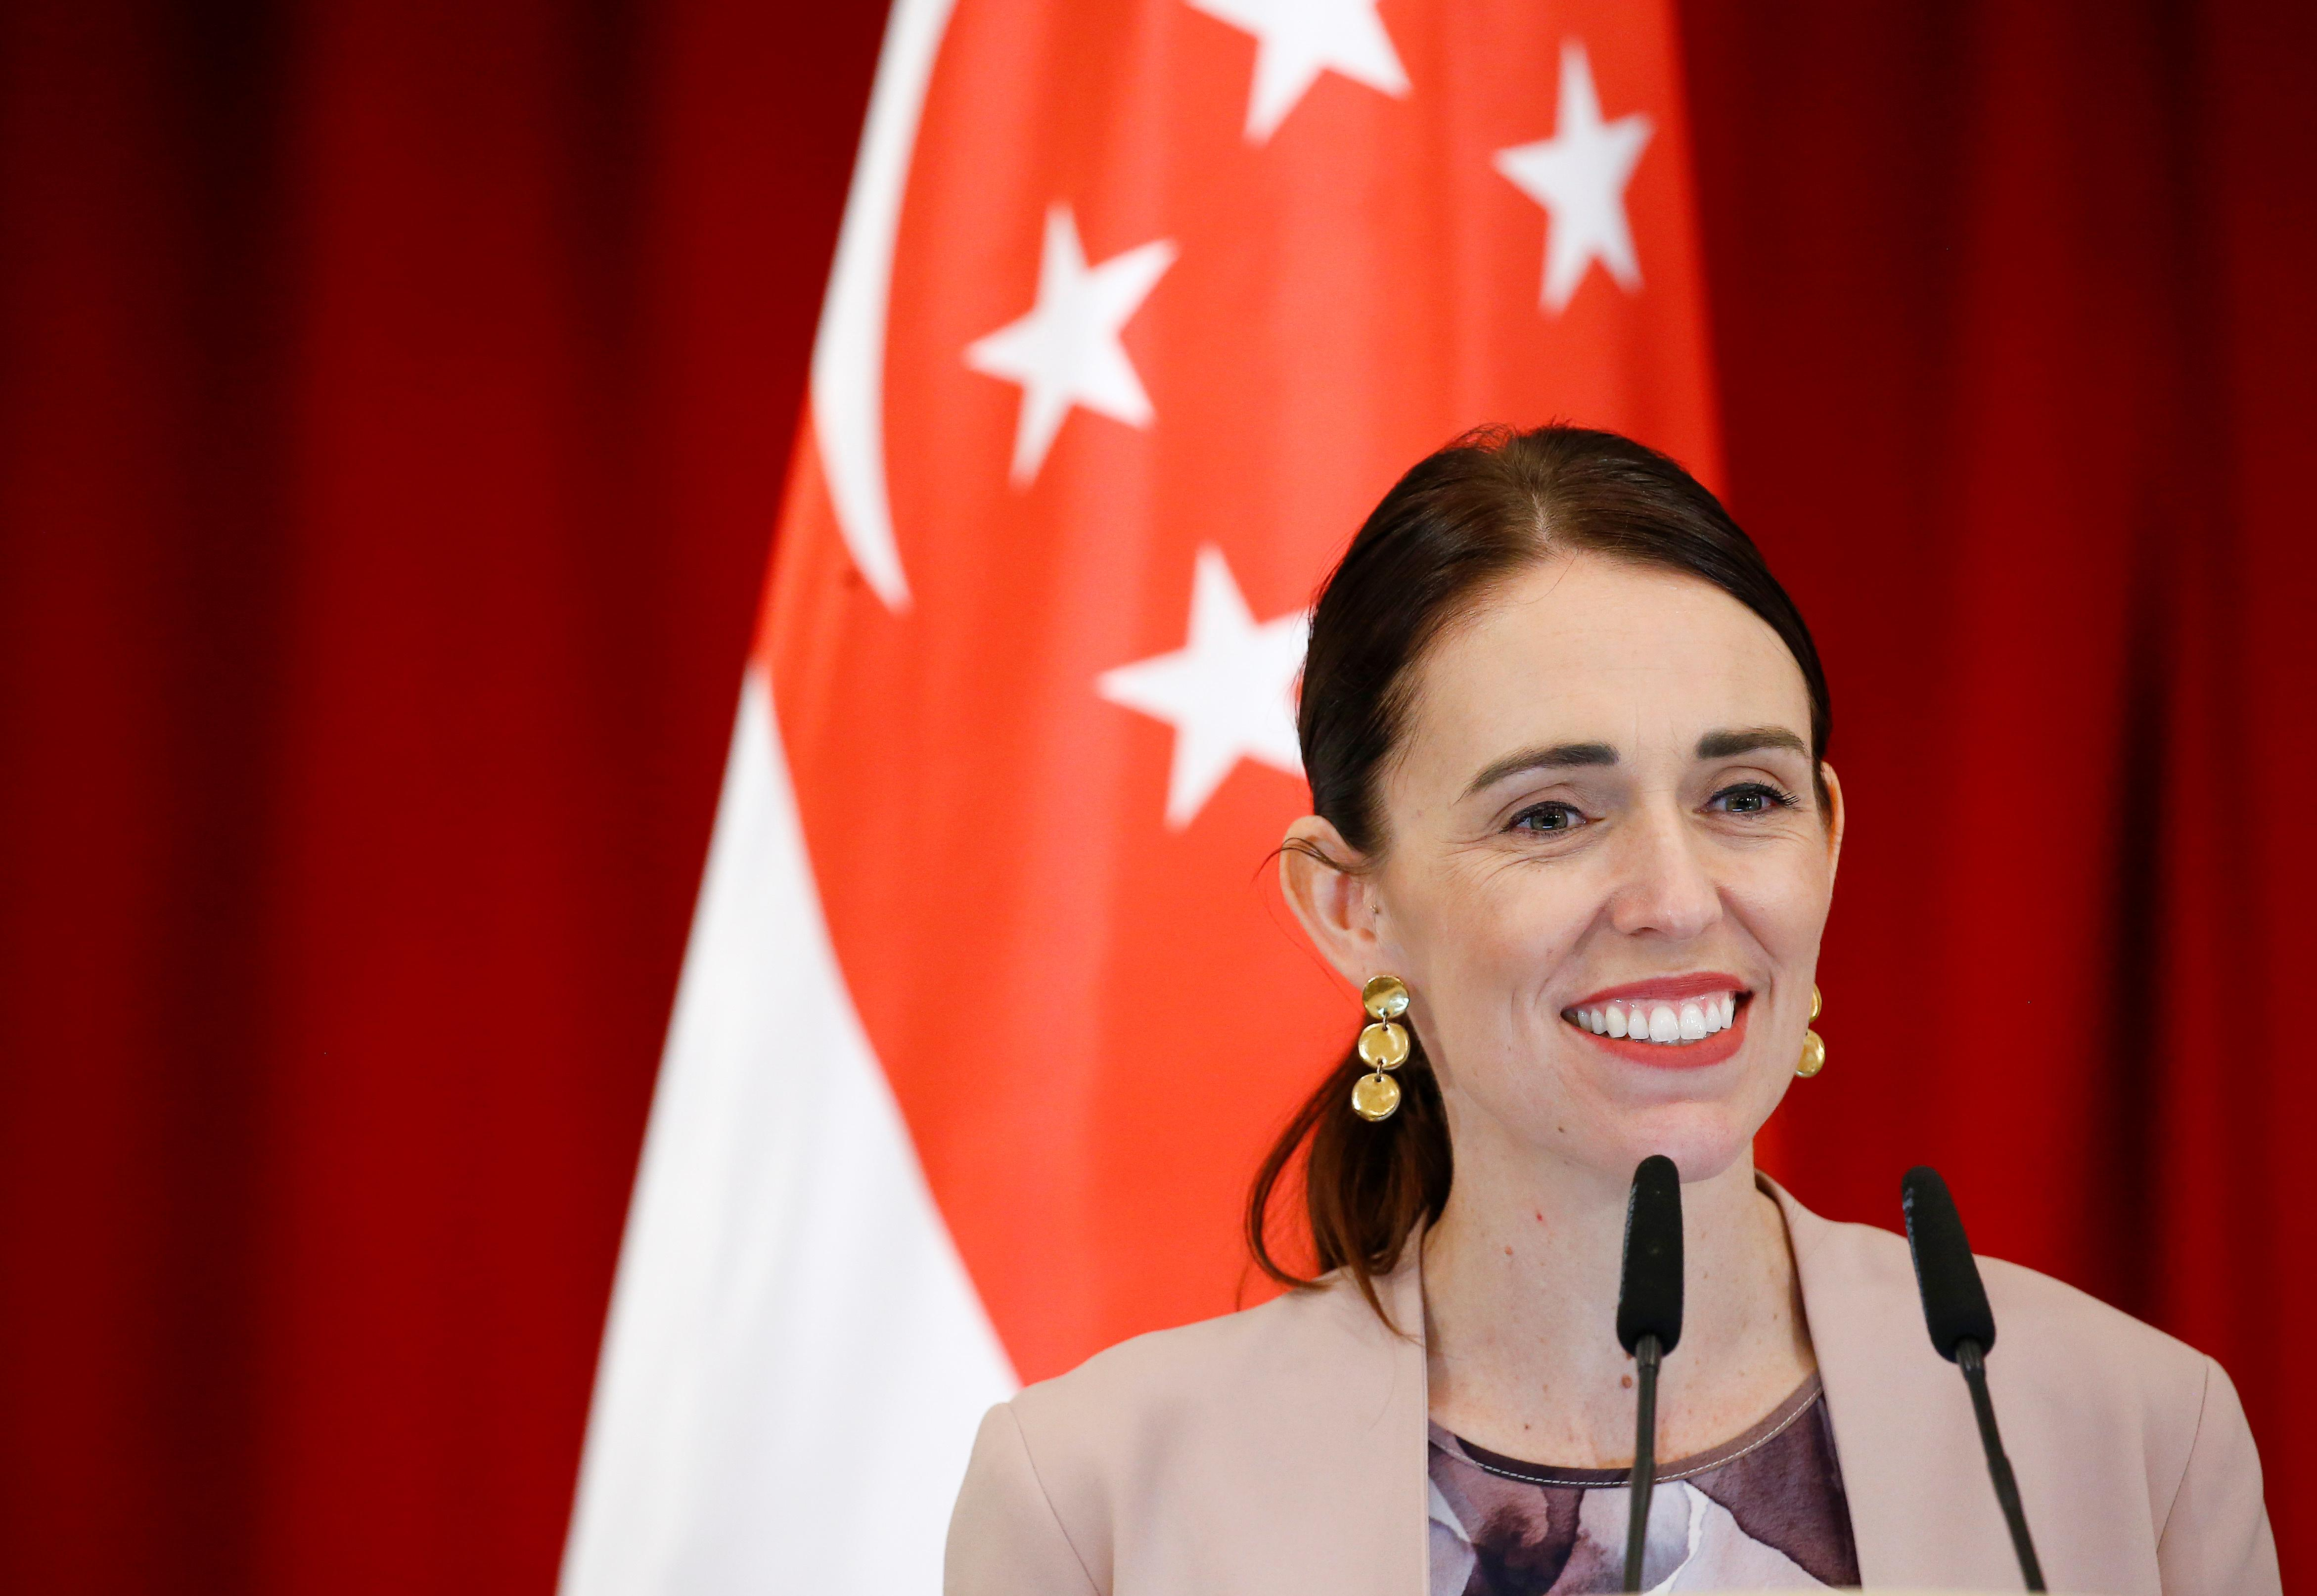 New Zealand's PM says government always looking at ways to stimulate economy